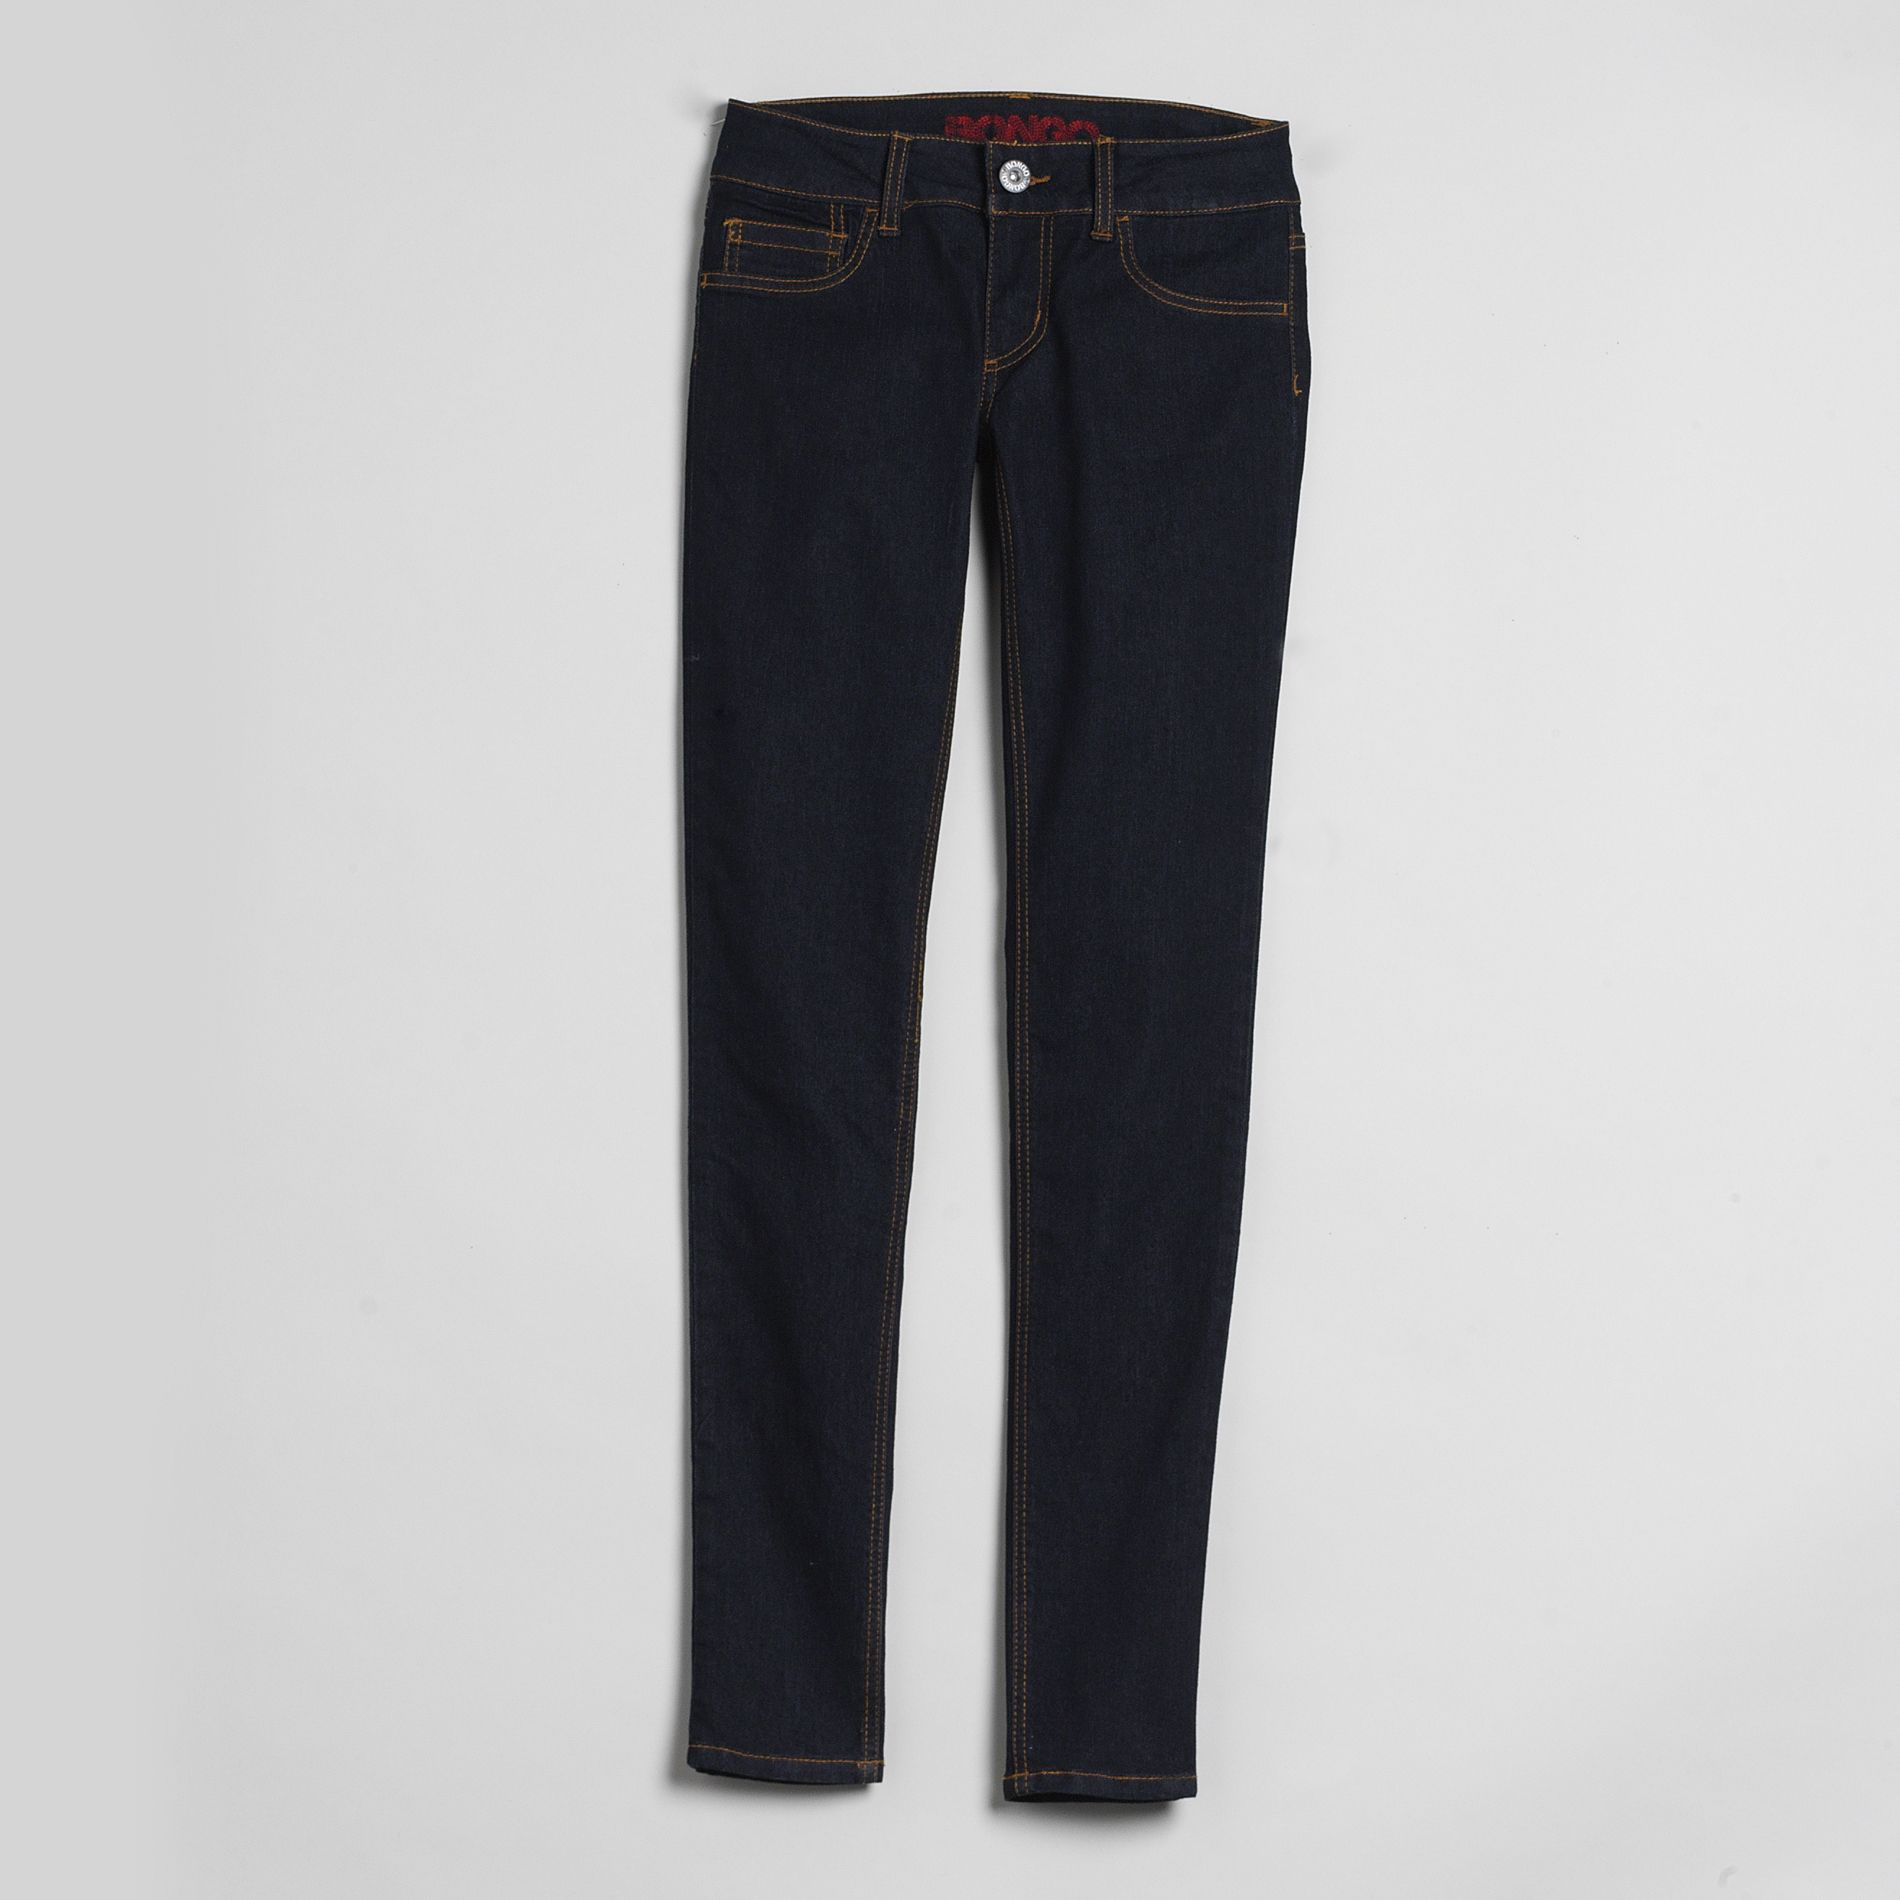 Bongo Junior's  Jean at Sears.com